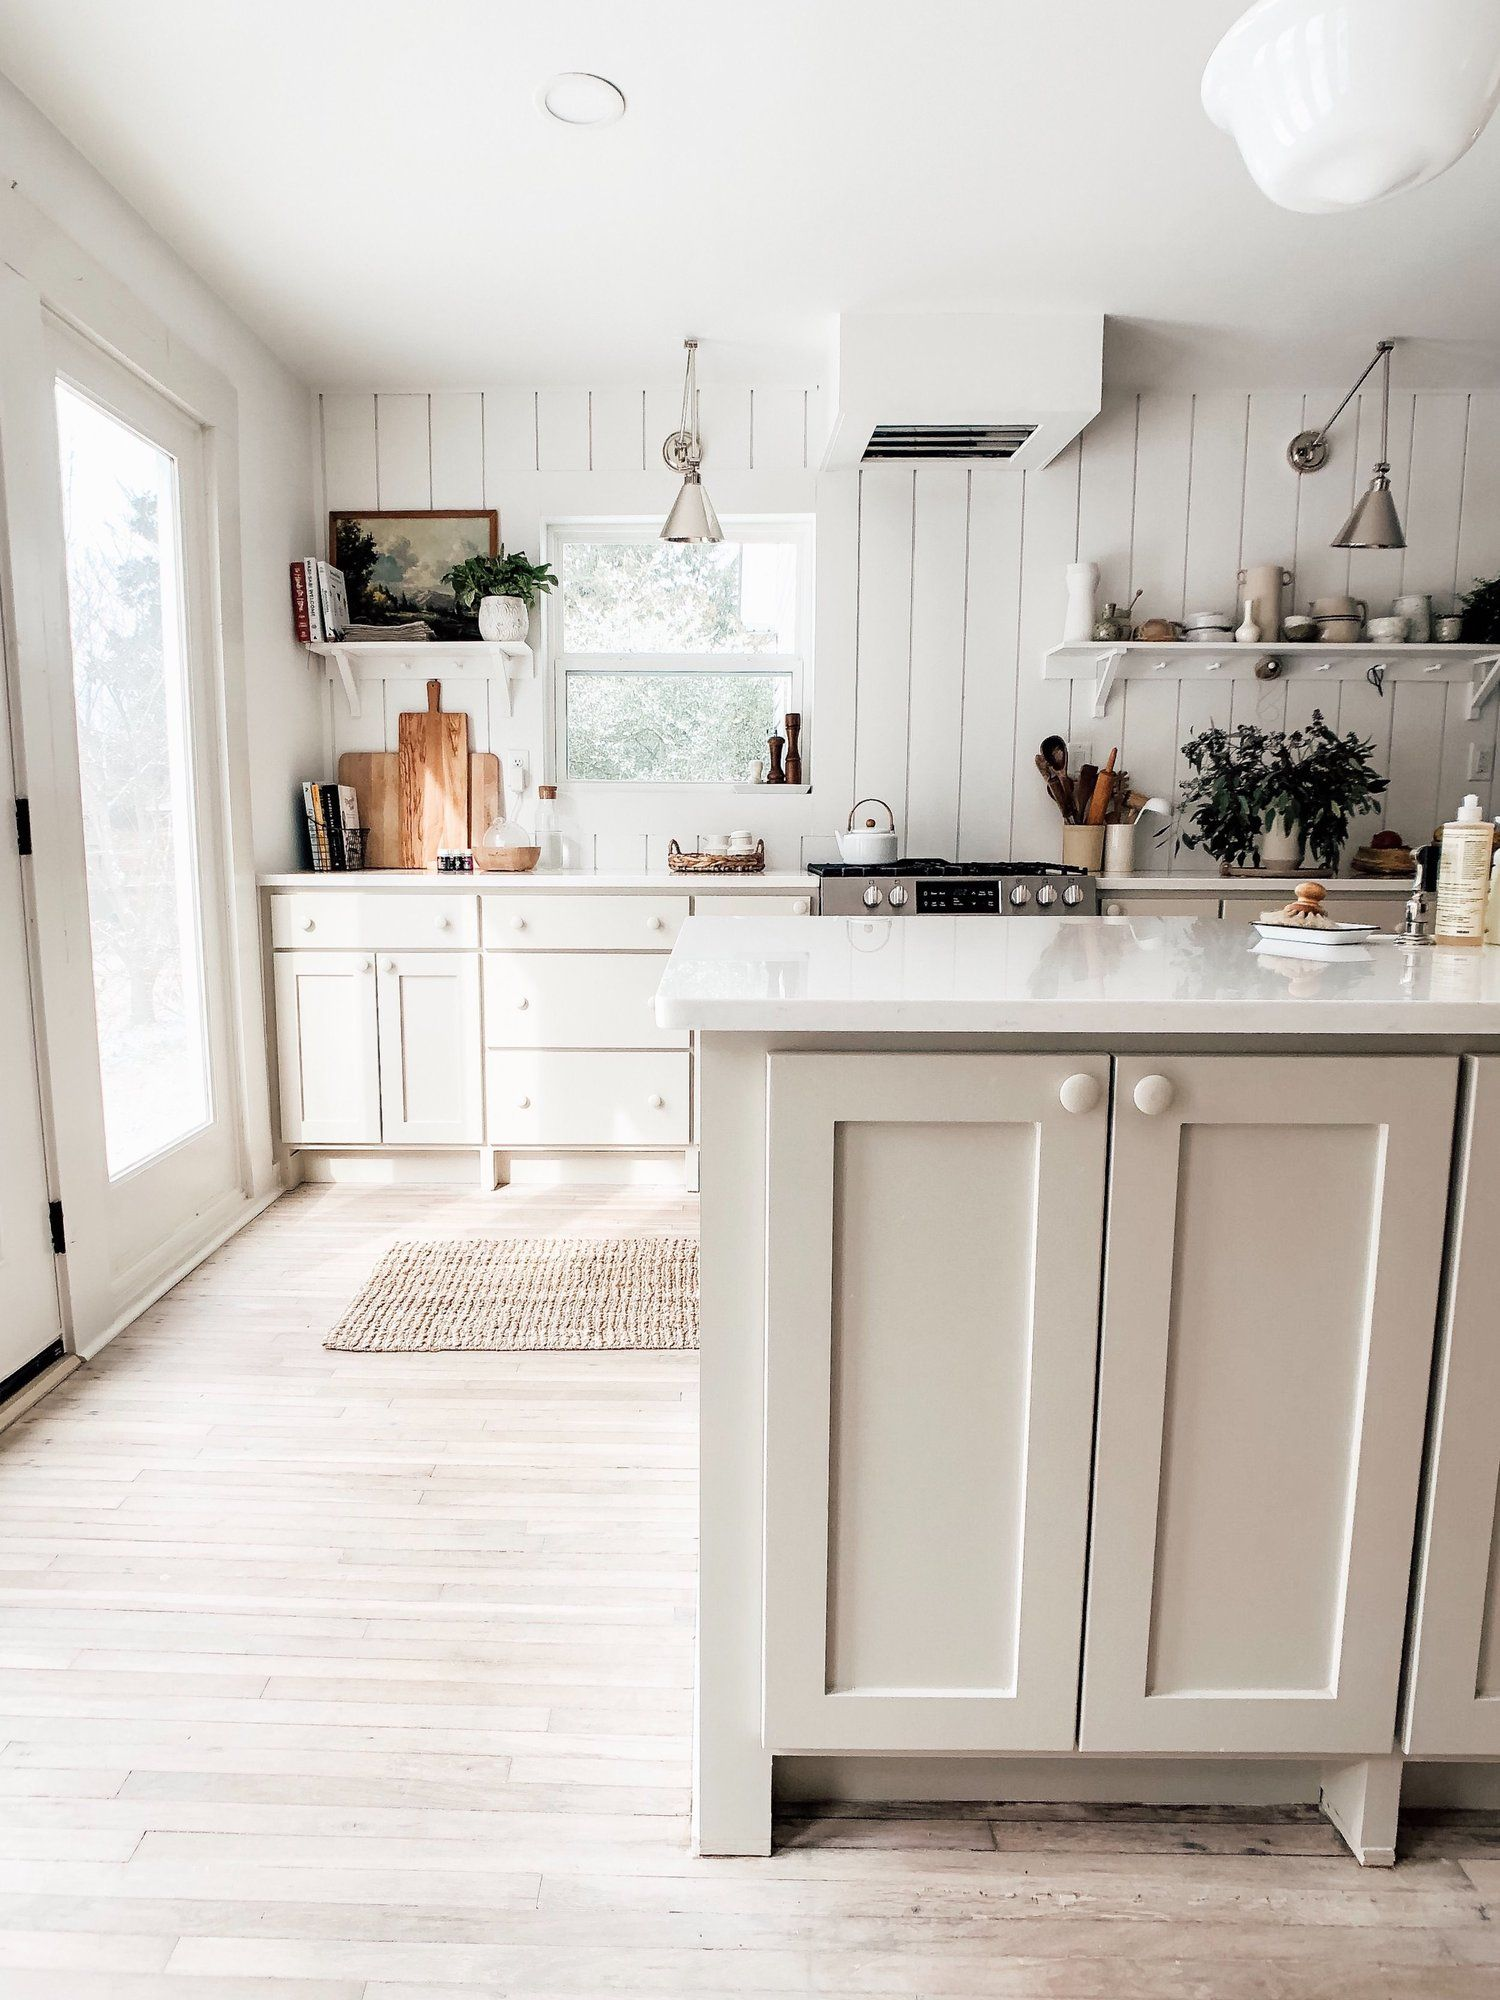 8 Great Neutral Cabinet Colors For Kitchens The Grit And Polish Neutral Cabinets Kitchen Colors Kitchen Cabinet Colors